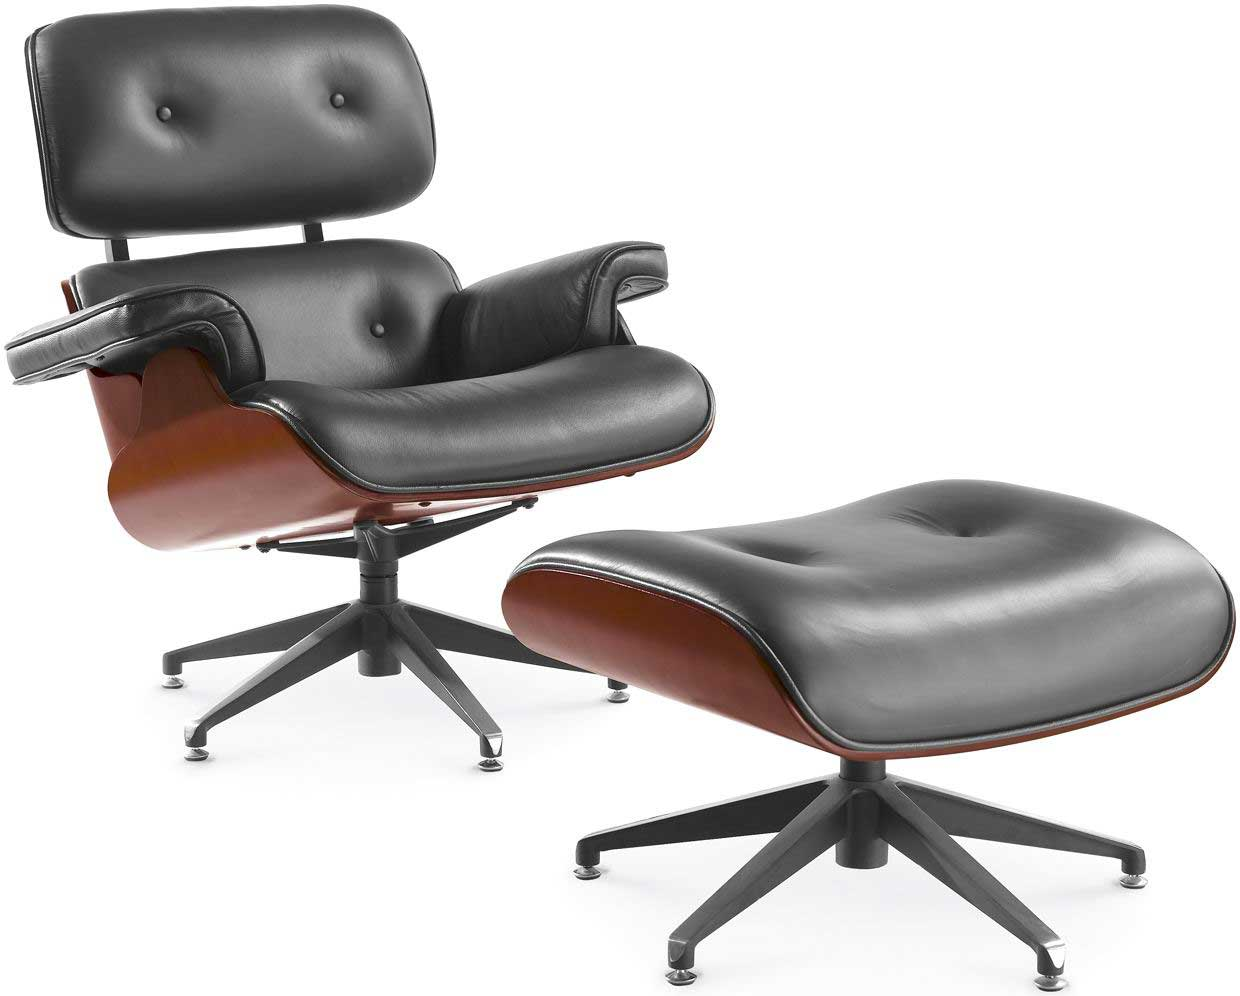 Lounge Desk Chair Contemporary Leather Swivel Armchair Office Furniture